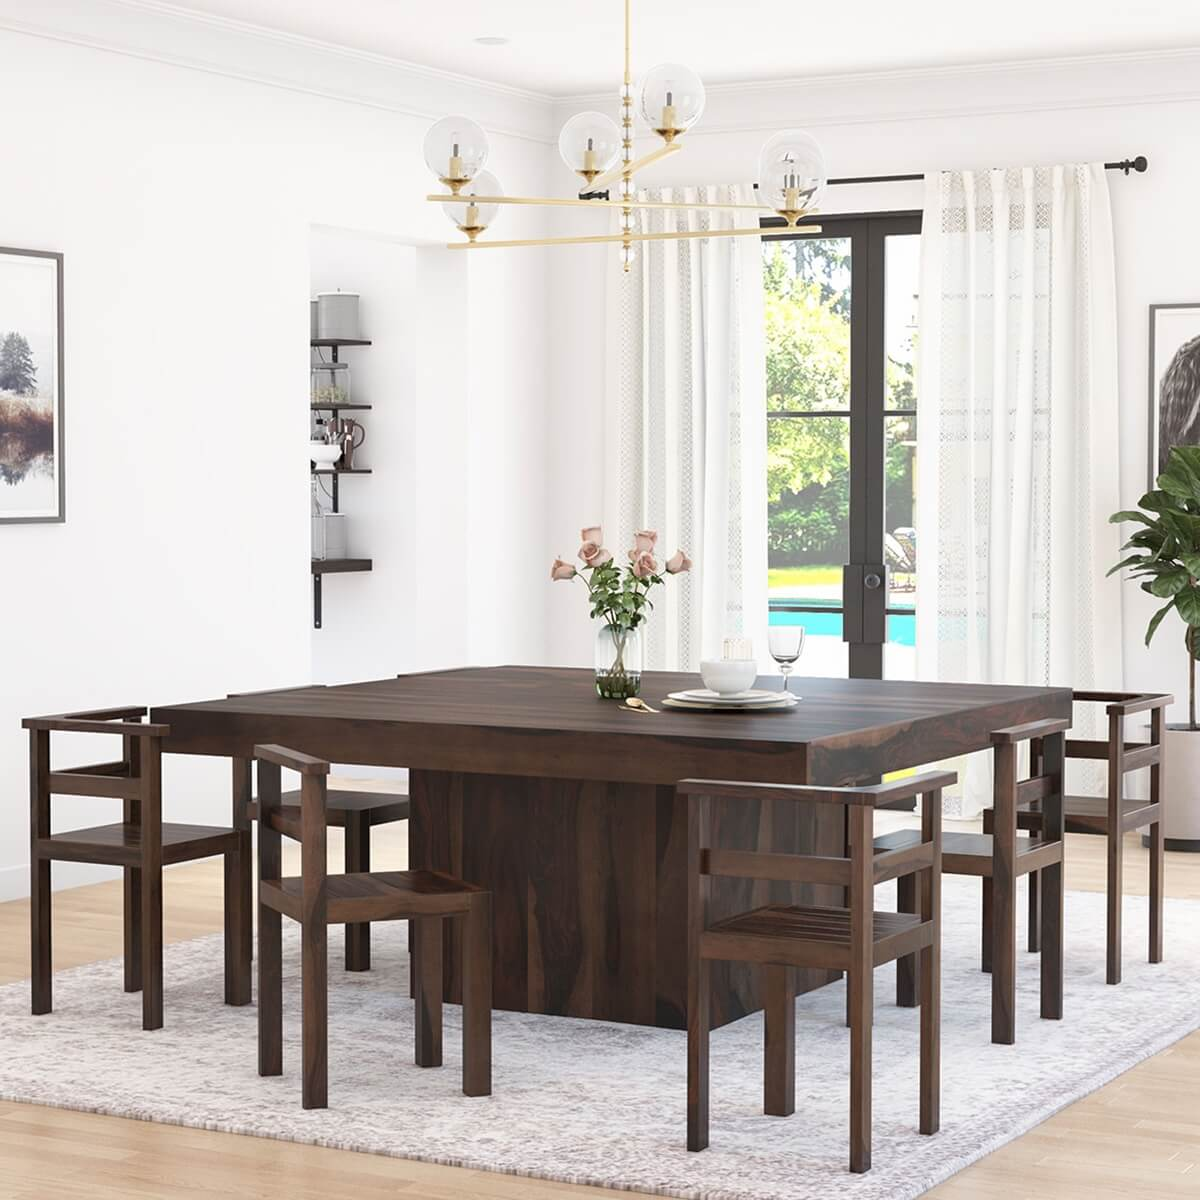 modern rustic solid wood 64 square pedestal dining table